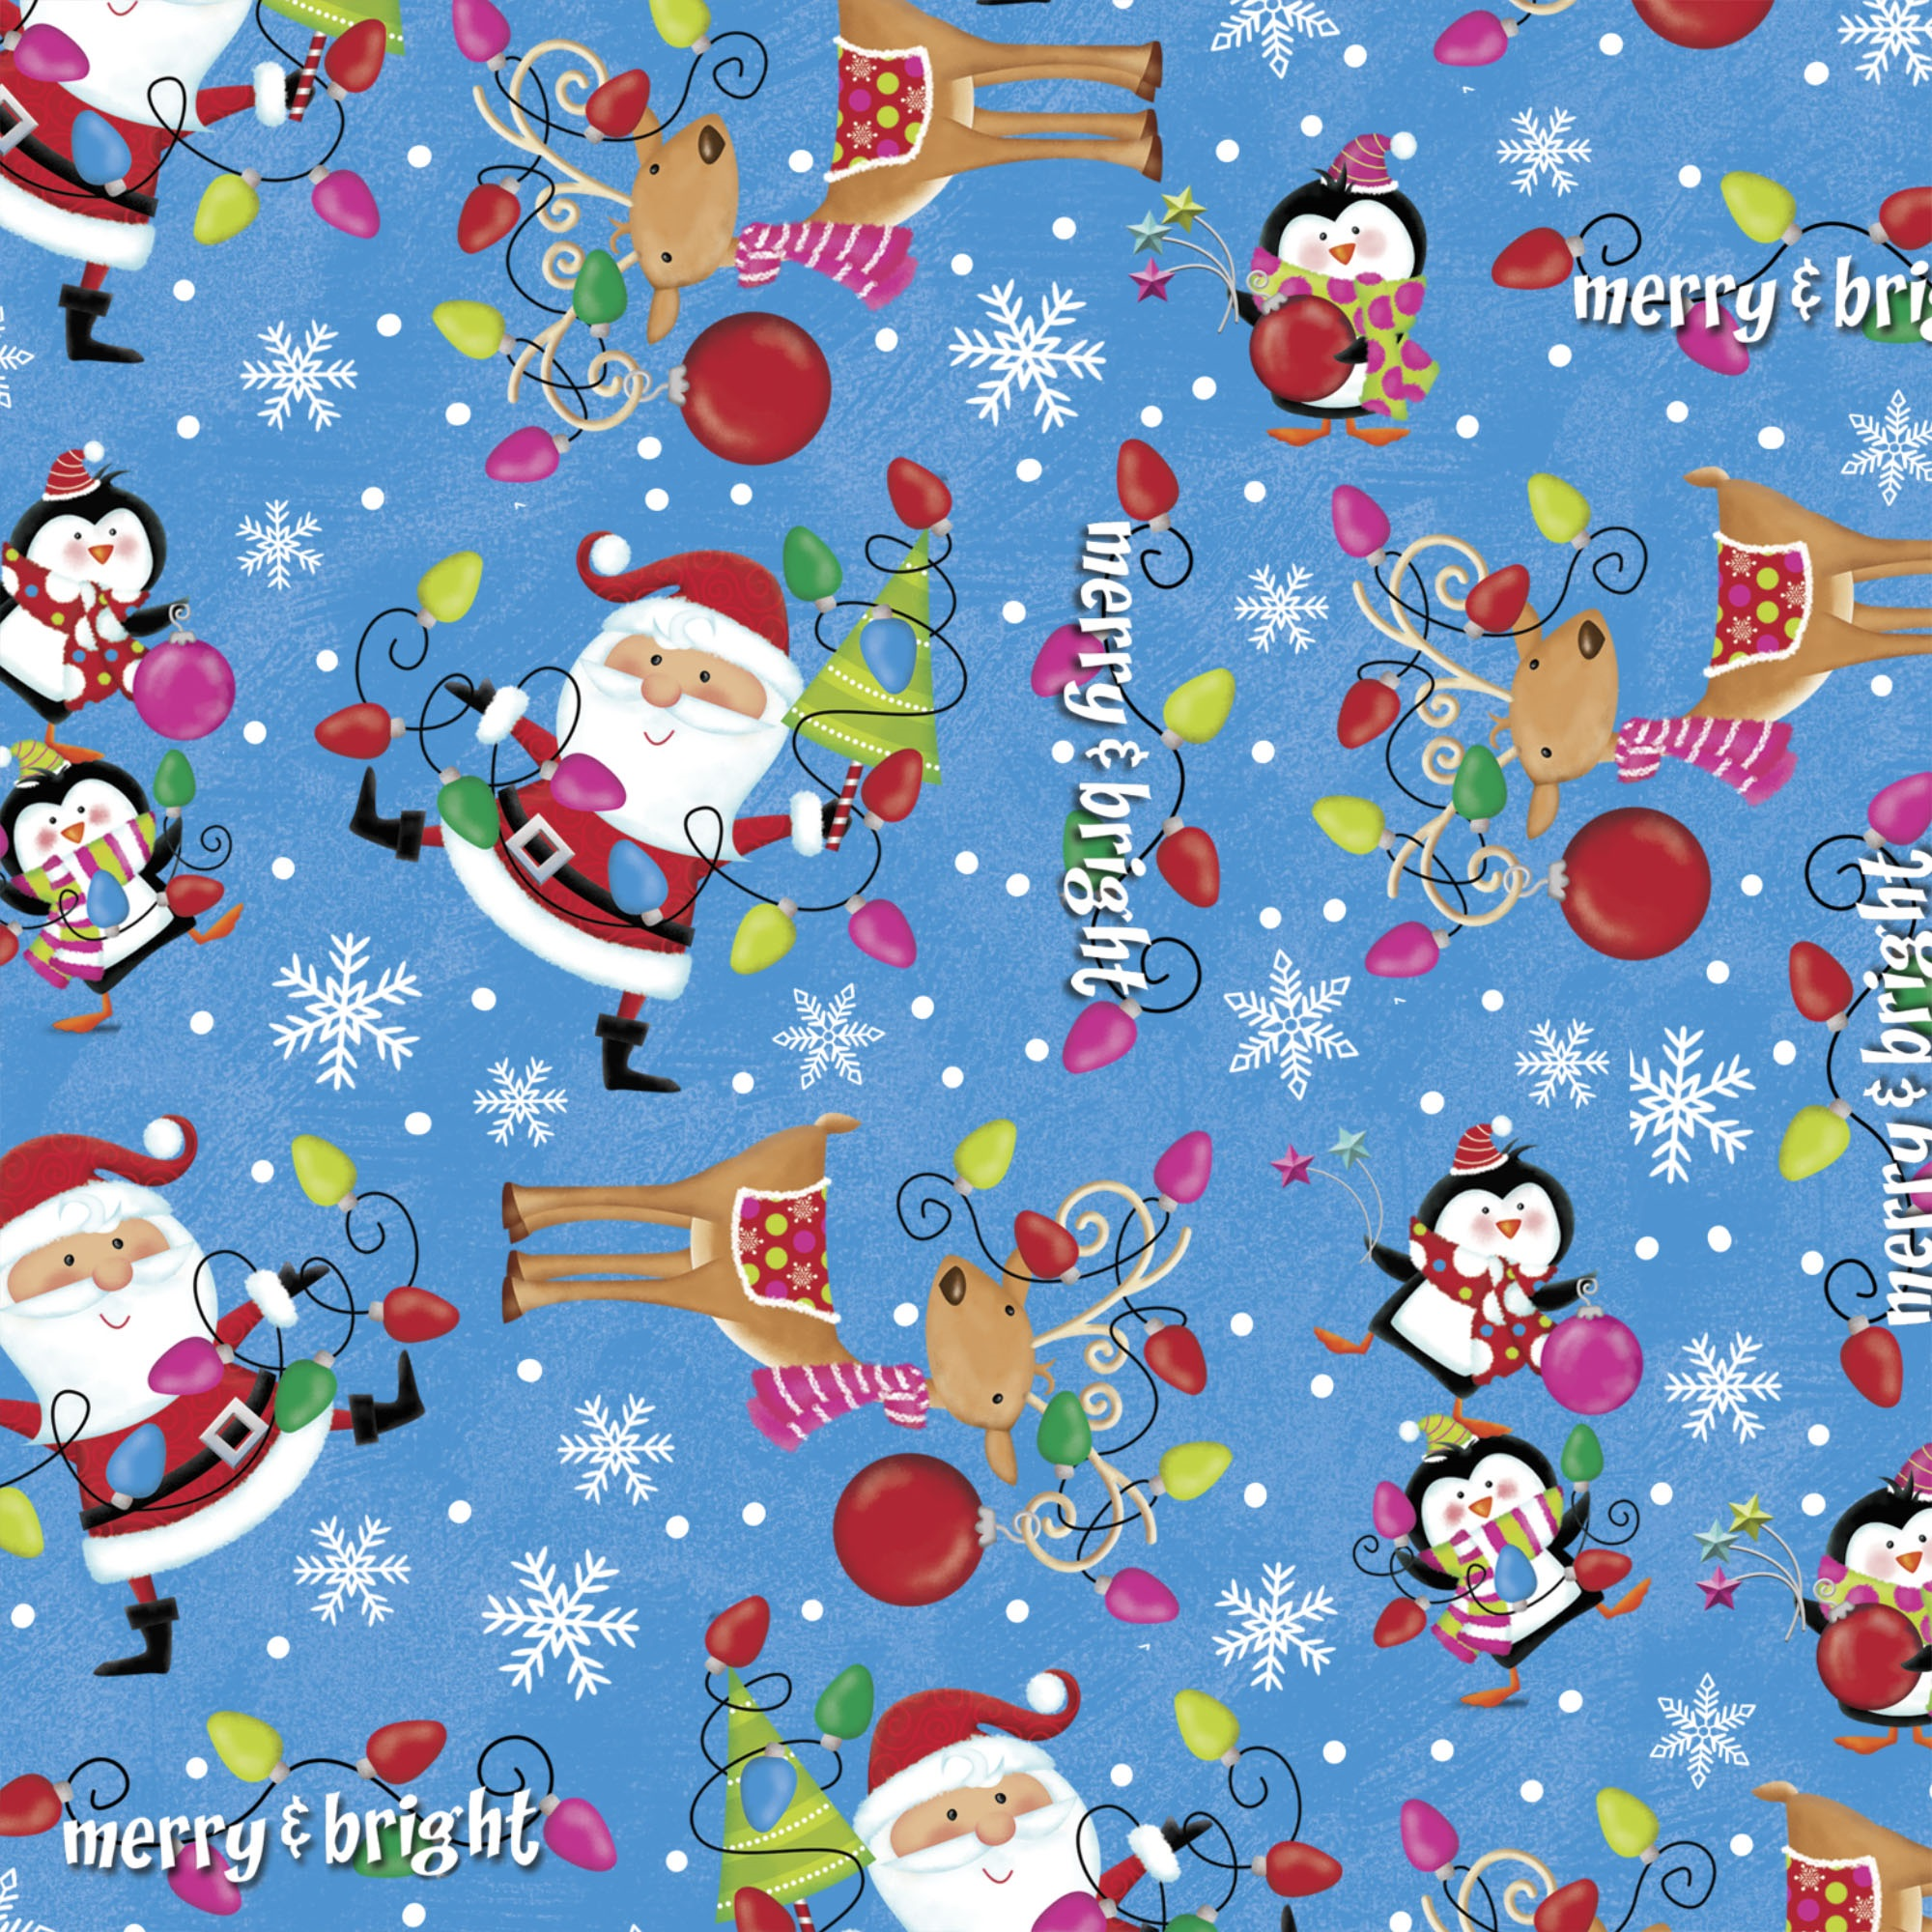 DAVID TEXTILES MERRY AND BRIGHT SANTA FLANNEL FABRIC BY THE YARD, 42 INCHES WIDE